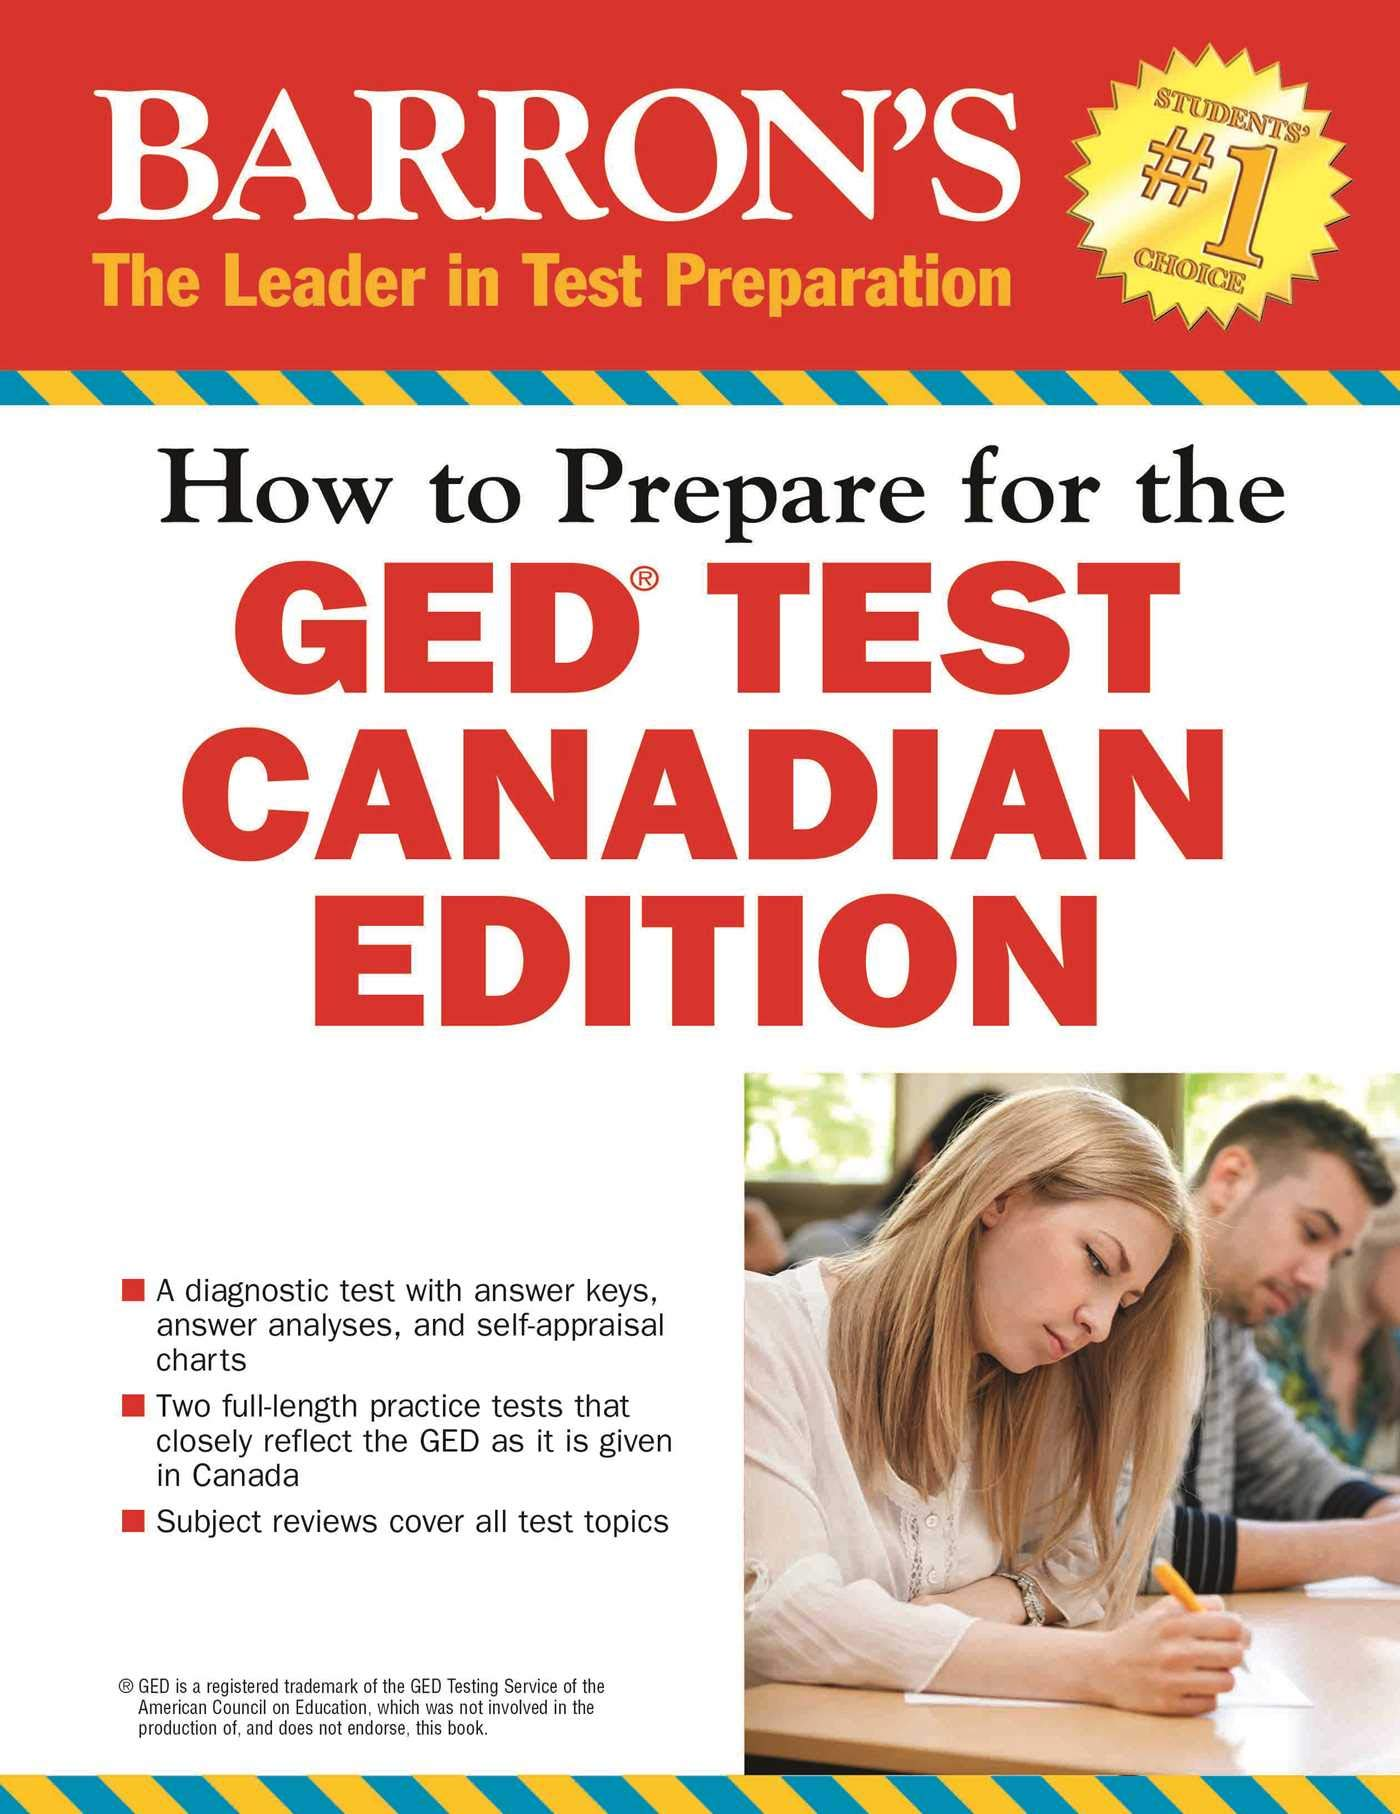 How To Prepare For The GED Test  Canadian Edition  Barron's GED Canada